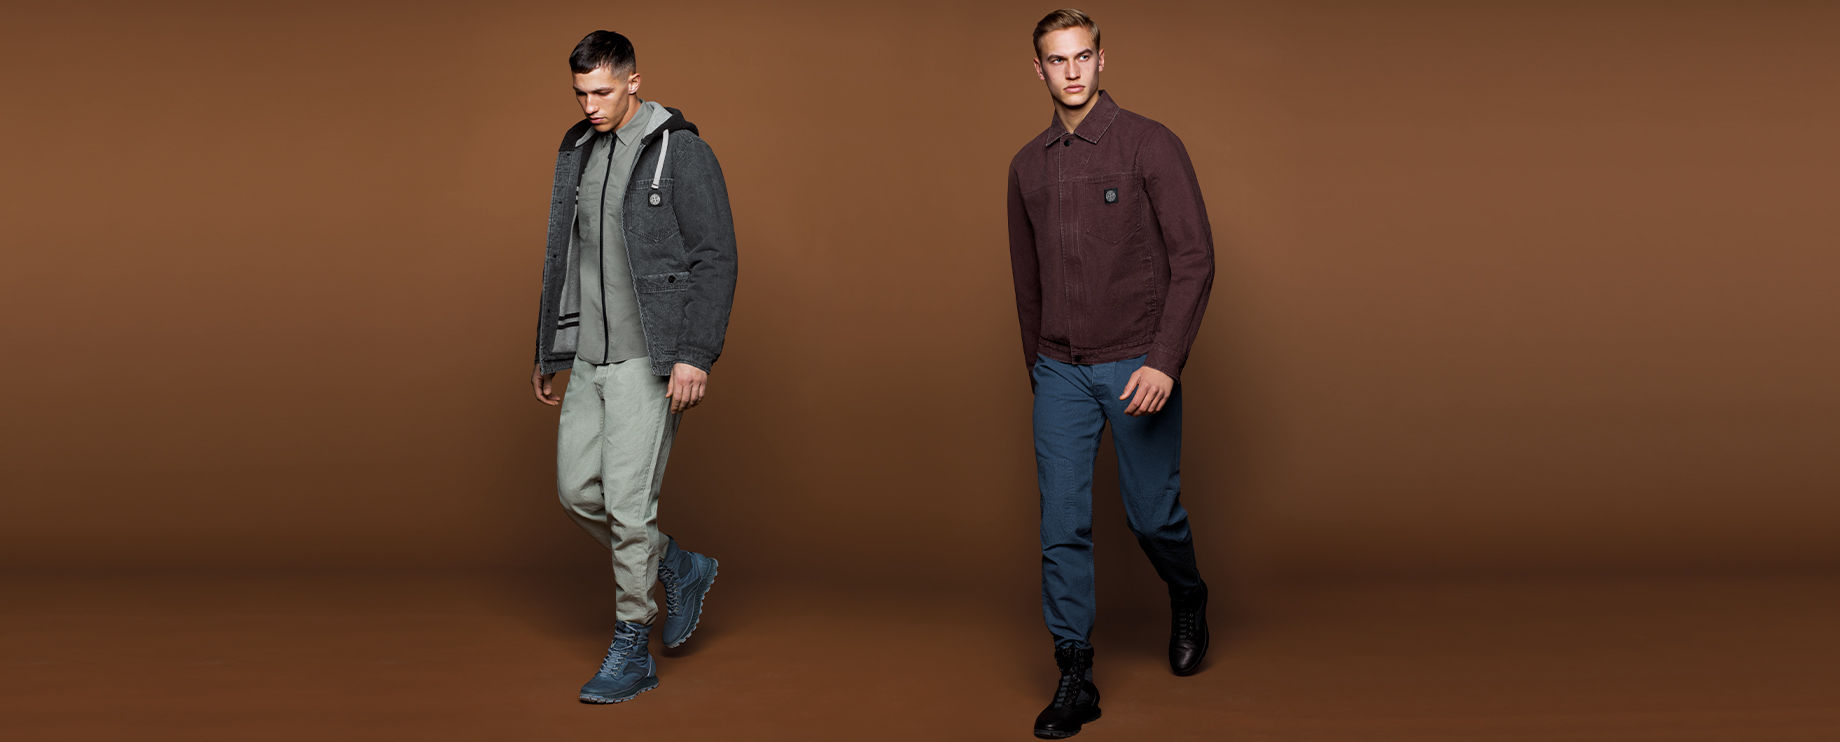 Two models, one wearing a dark grey hooded parka and ankle boots, grey shirt and pants, the other wearing a burgundy collared jacket, blue pants, and black ankle boots